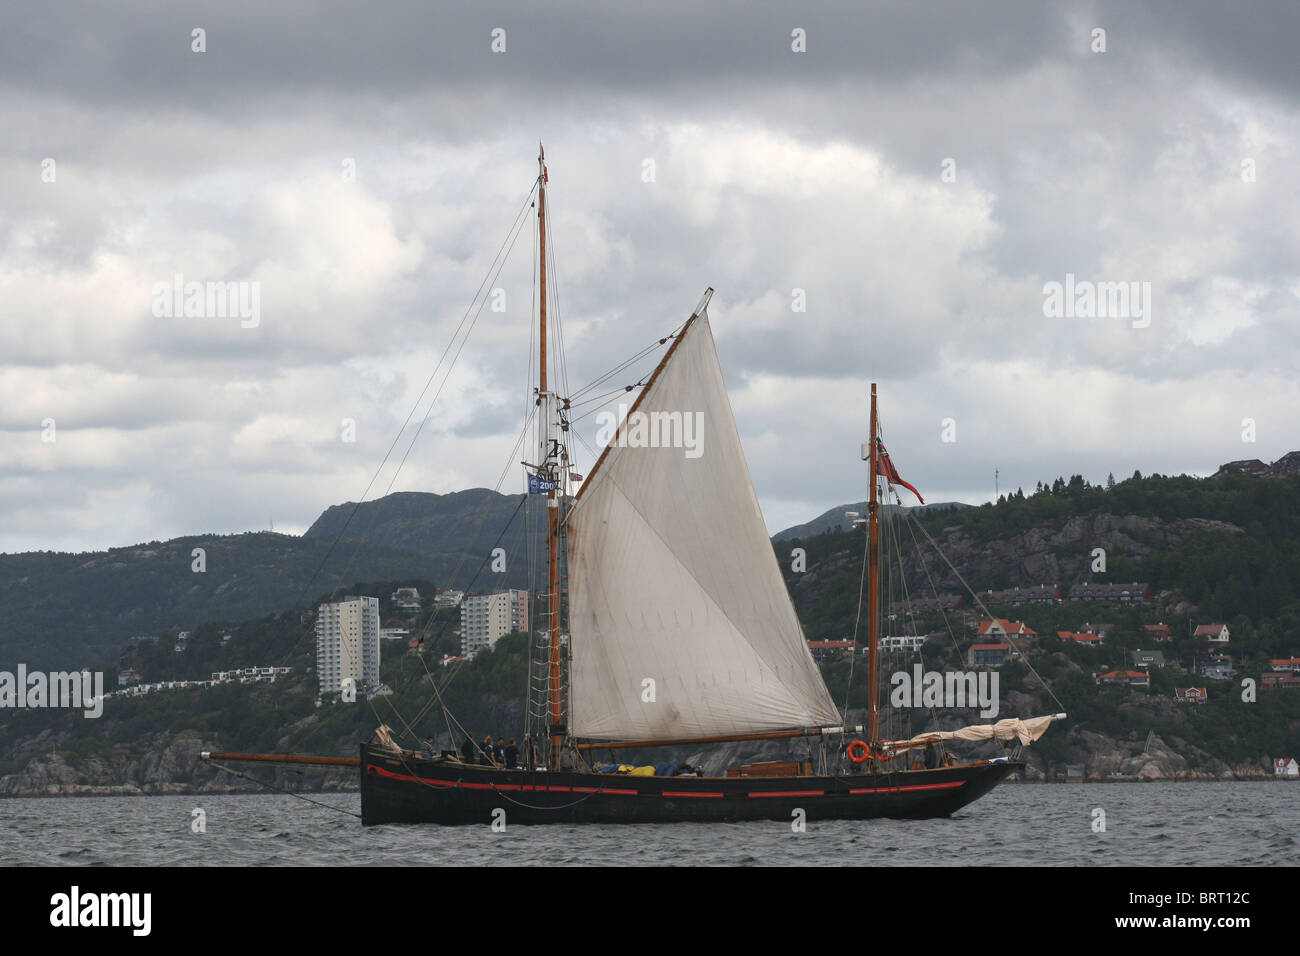 Leader, The Tall Ships Races 2008, Bergen - Stock Image